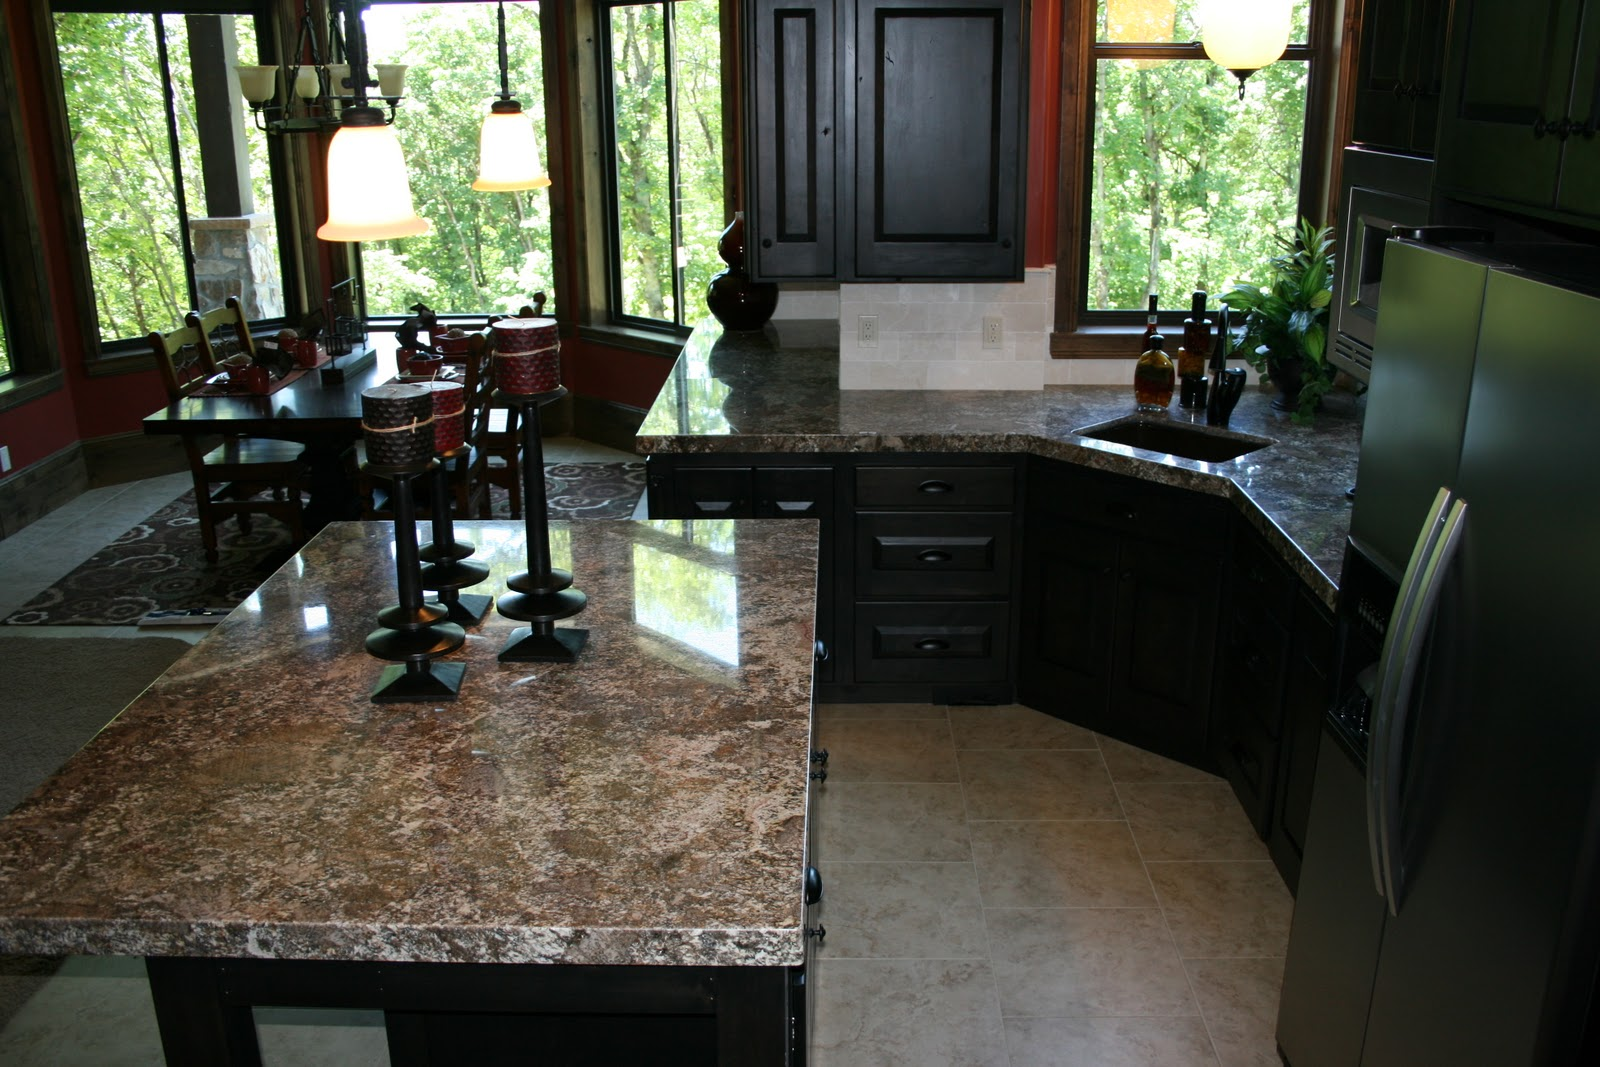 Today I Thought Iu0027d Show This Downstairs Kitchen From Our Portfolio. We Did  The Countertops In This Parade Home A Couple Of Years Ago.